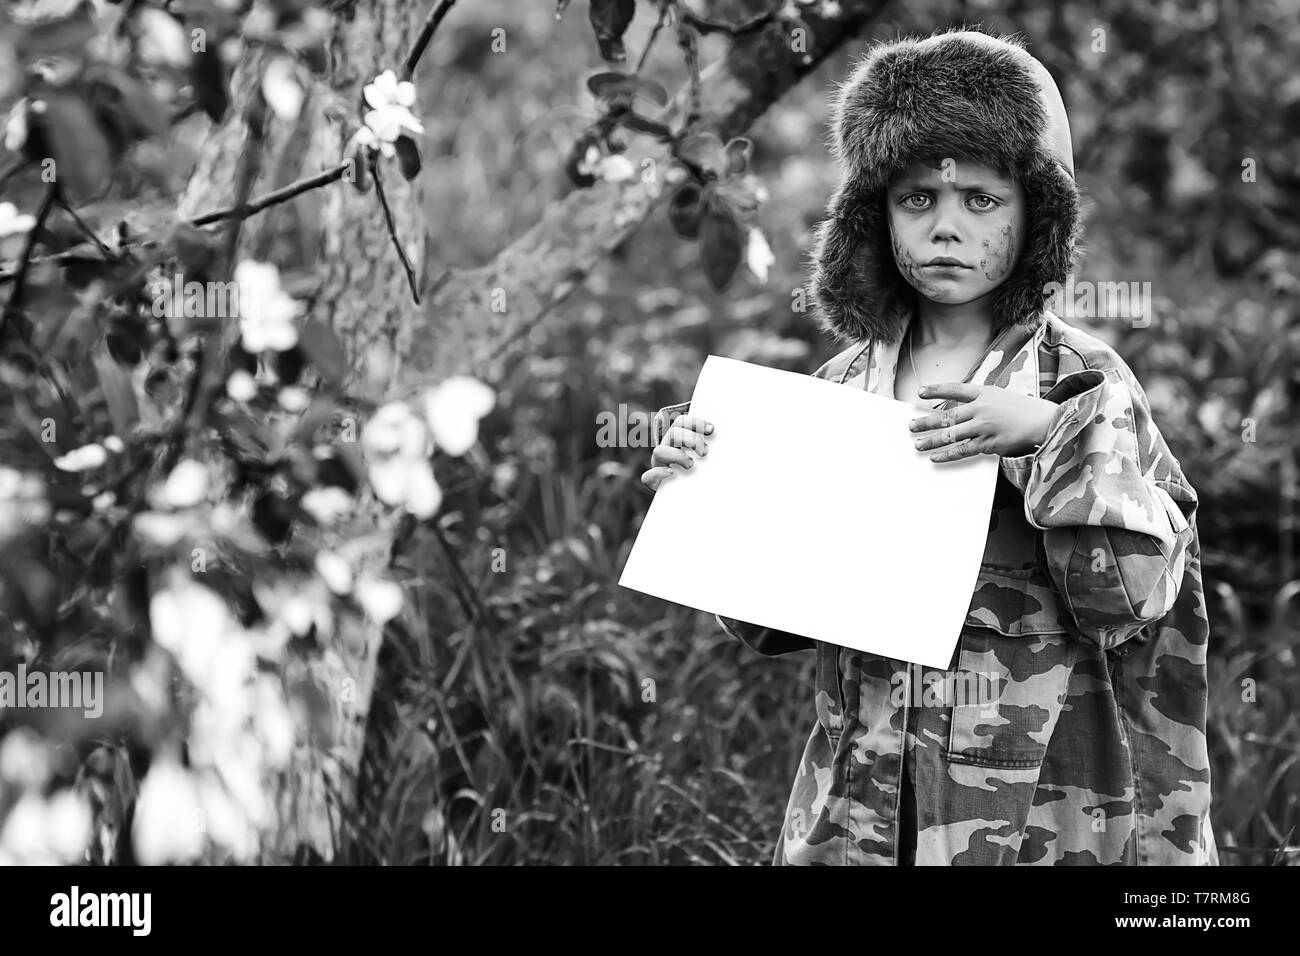 a boy in a camouflage uniform and a hat with earflaps stands in an Apple orchard with a clean white sheet - Stock Image